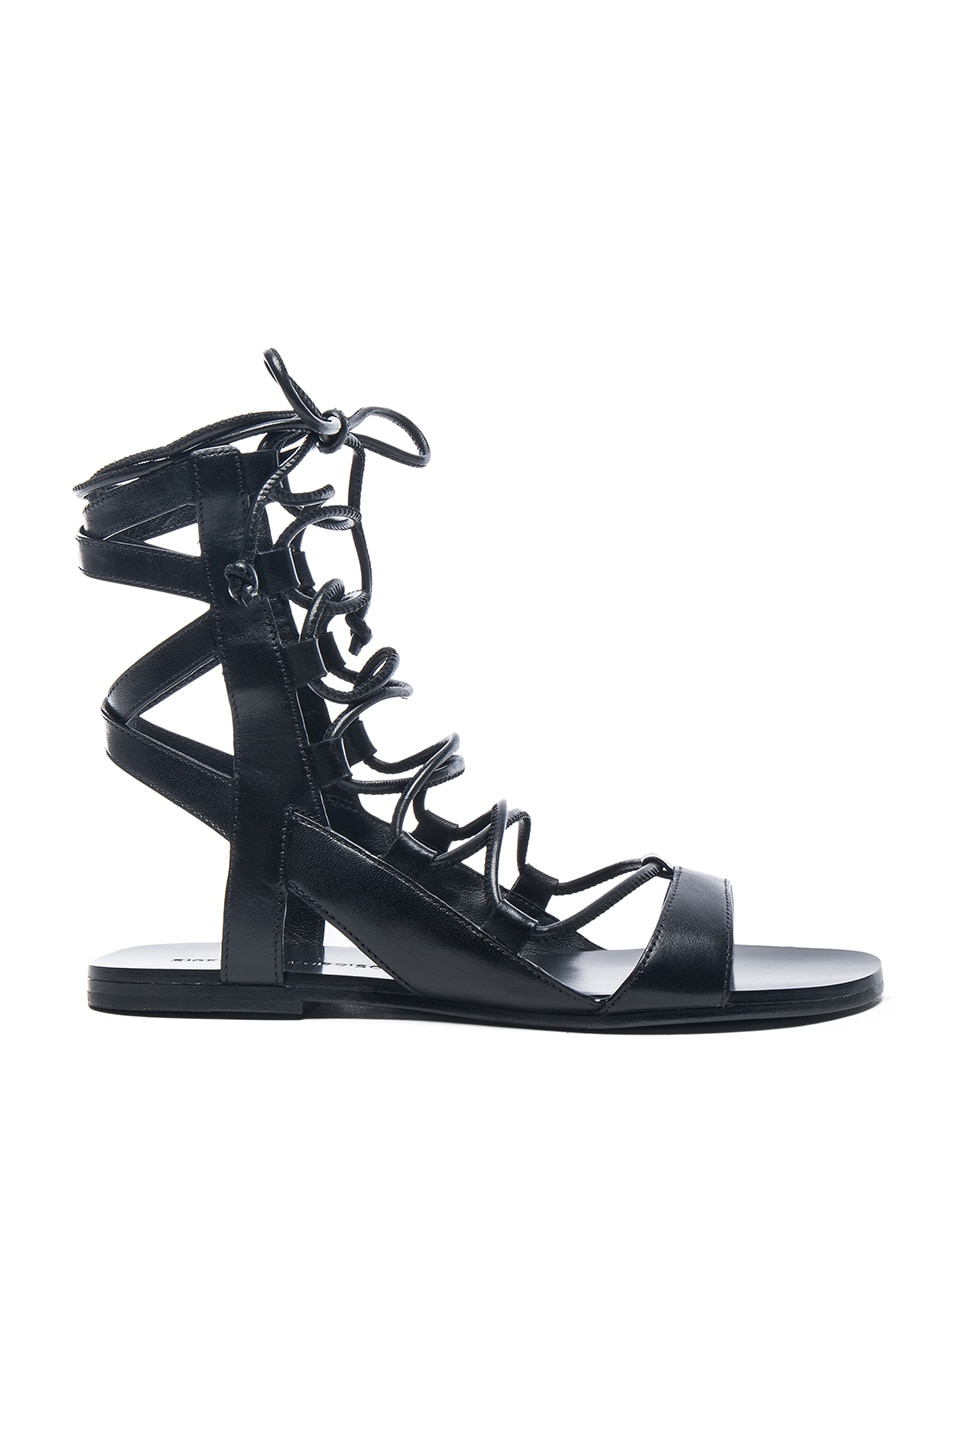 Image 1 of Sigerson Morrison Leather Bunny Sandals in Black